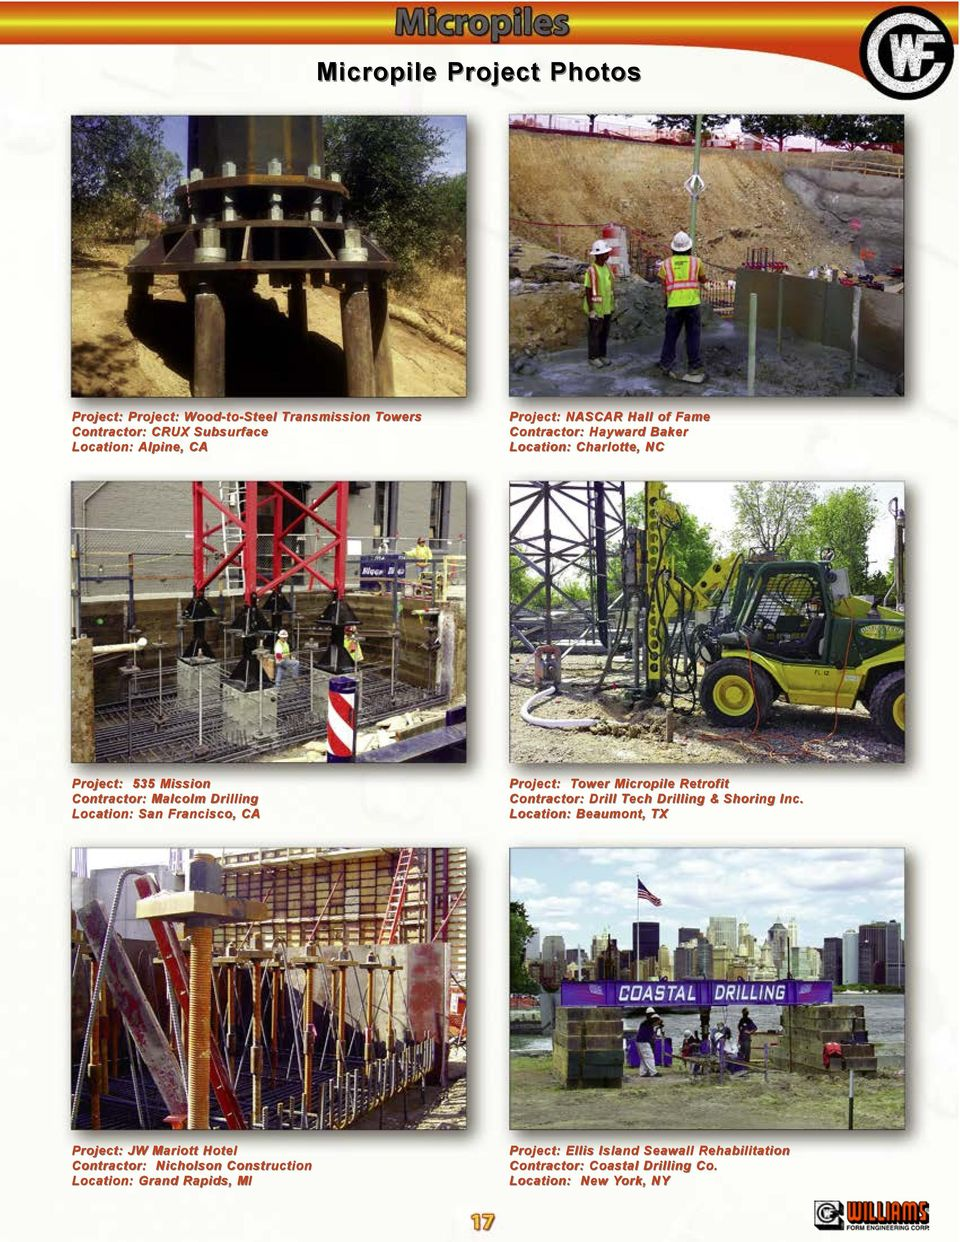 Project: Tower Micropile Retrofit Contractor: Drill Tech Drilling & Shoring Inc.